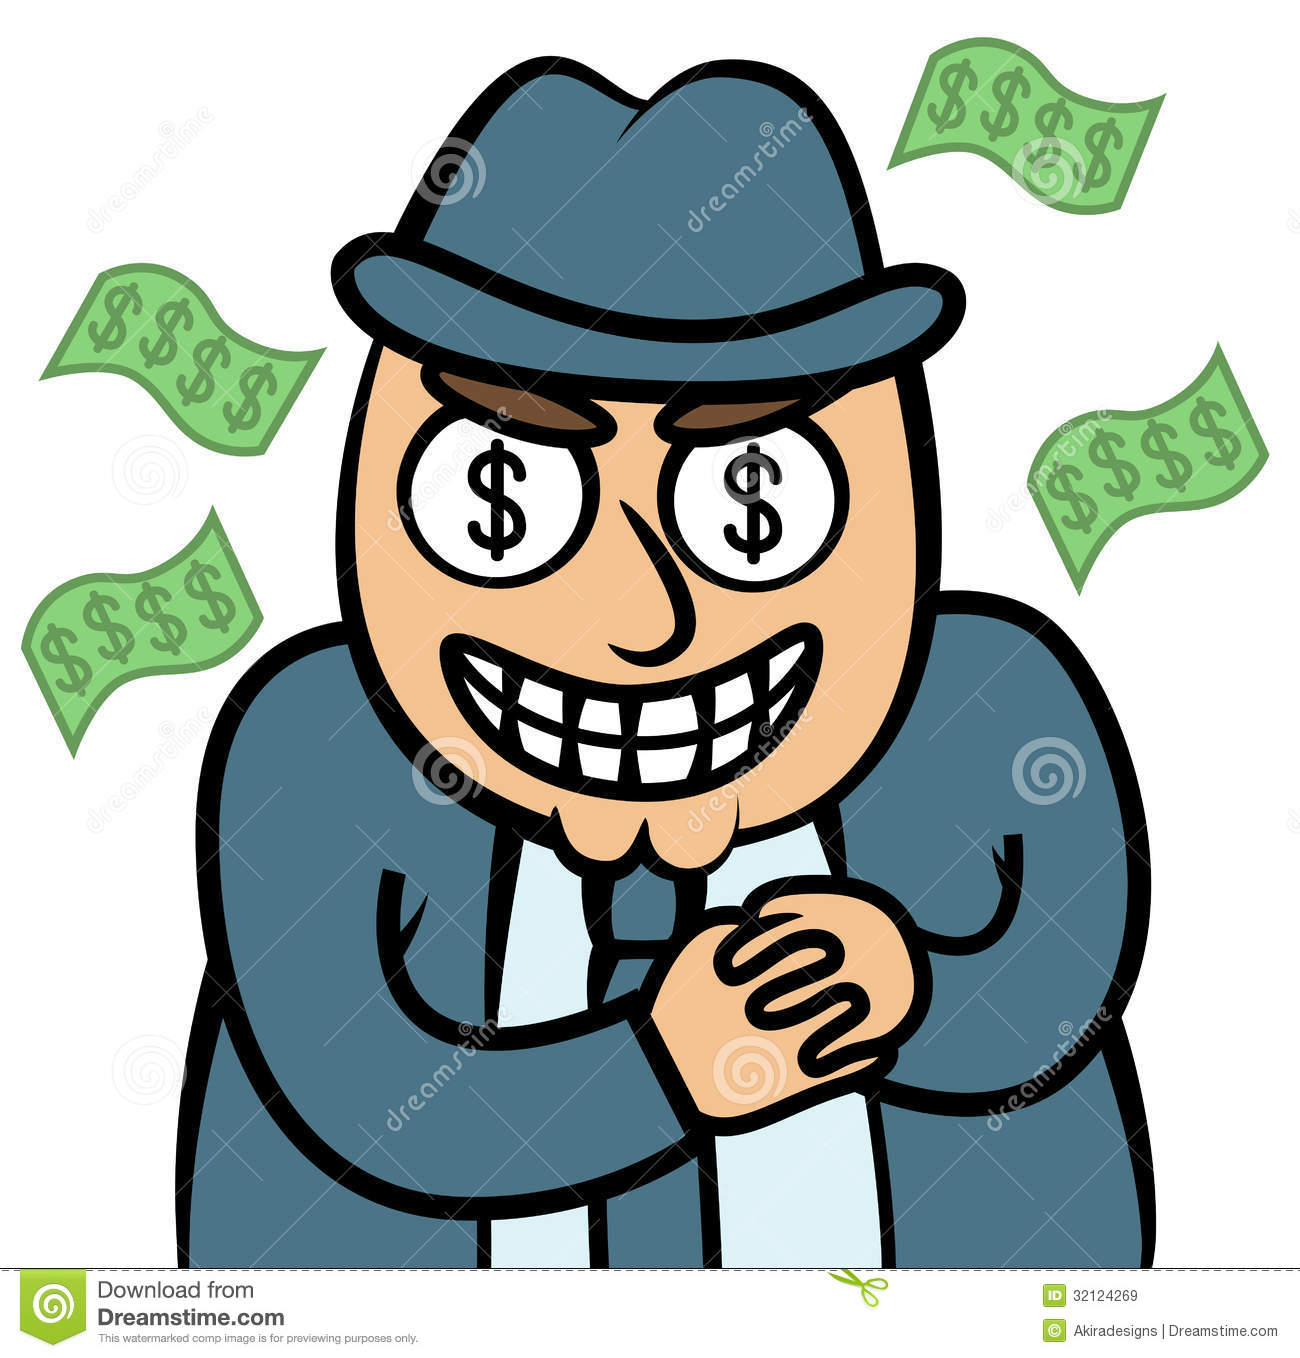 Loan shark clipart picture royalty free stock Evil Money Hungry Man In Suit Royalty Free Stock Images - Image ... picture royalty free stock